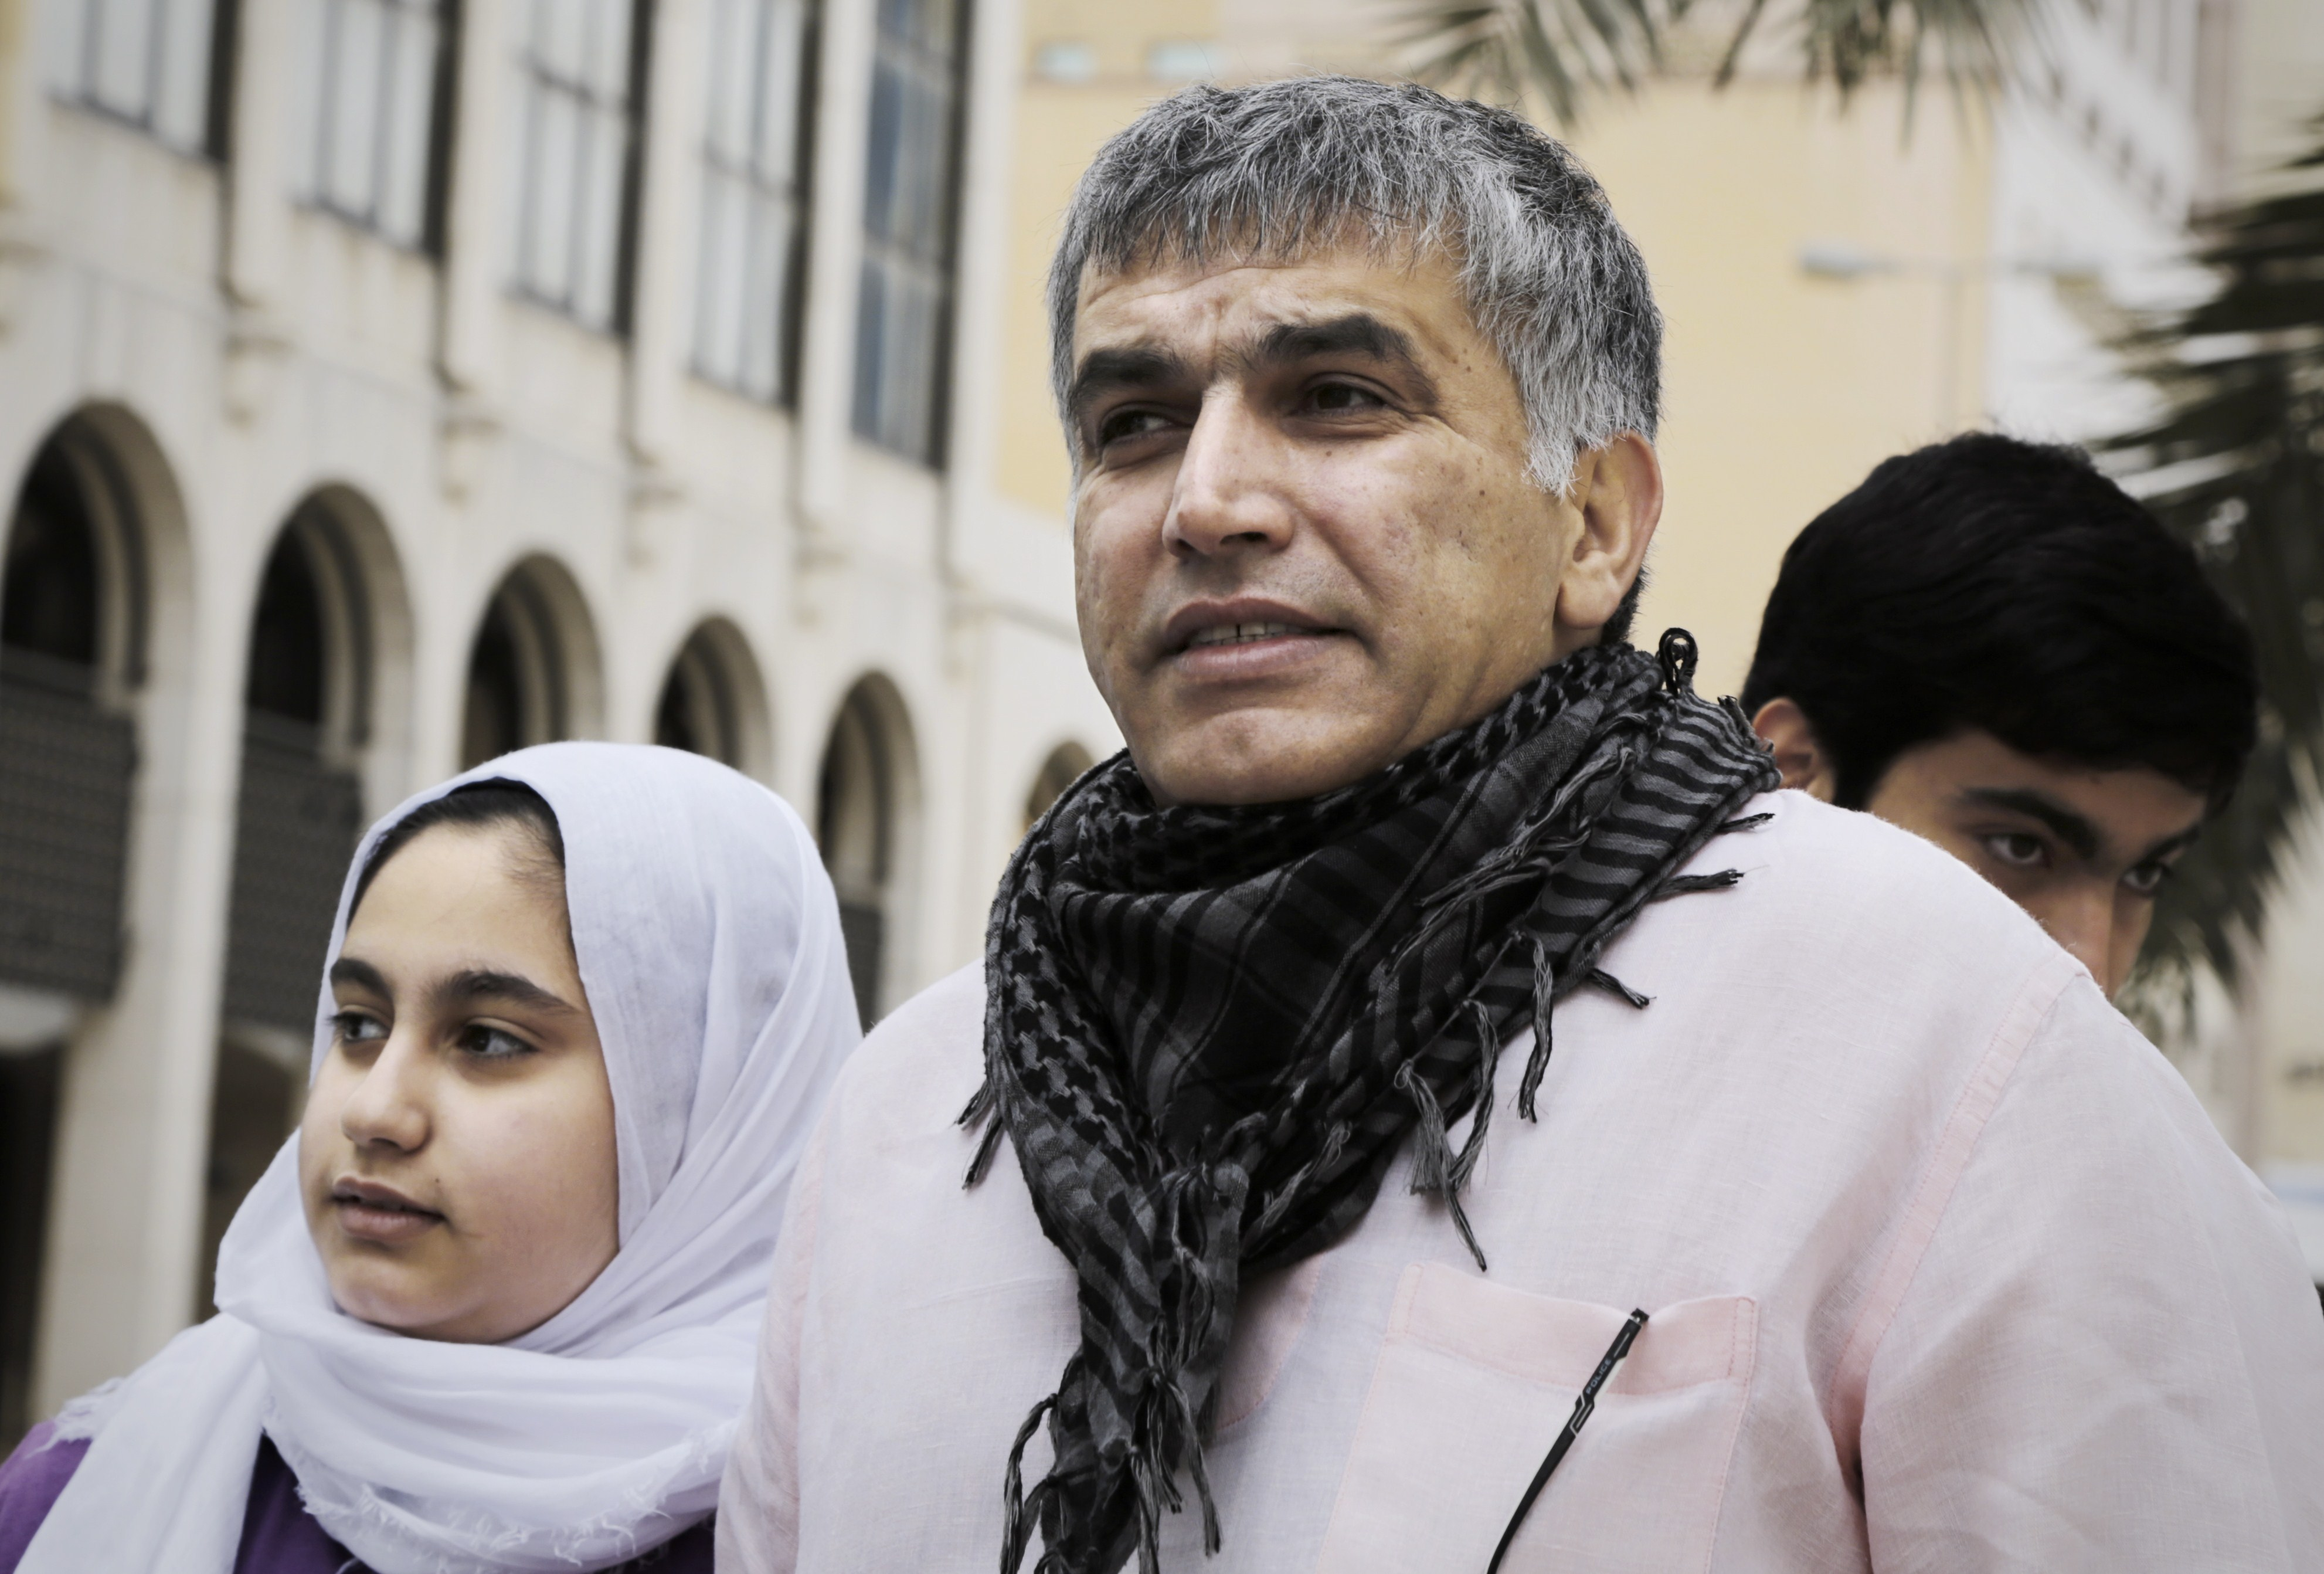 Bahraini human rights activist Nabeel Rajab (C) and his daughter Malak (L) during an appeal hearing on February 11, 2015 in the Bahraini capital Manama.